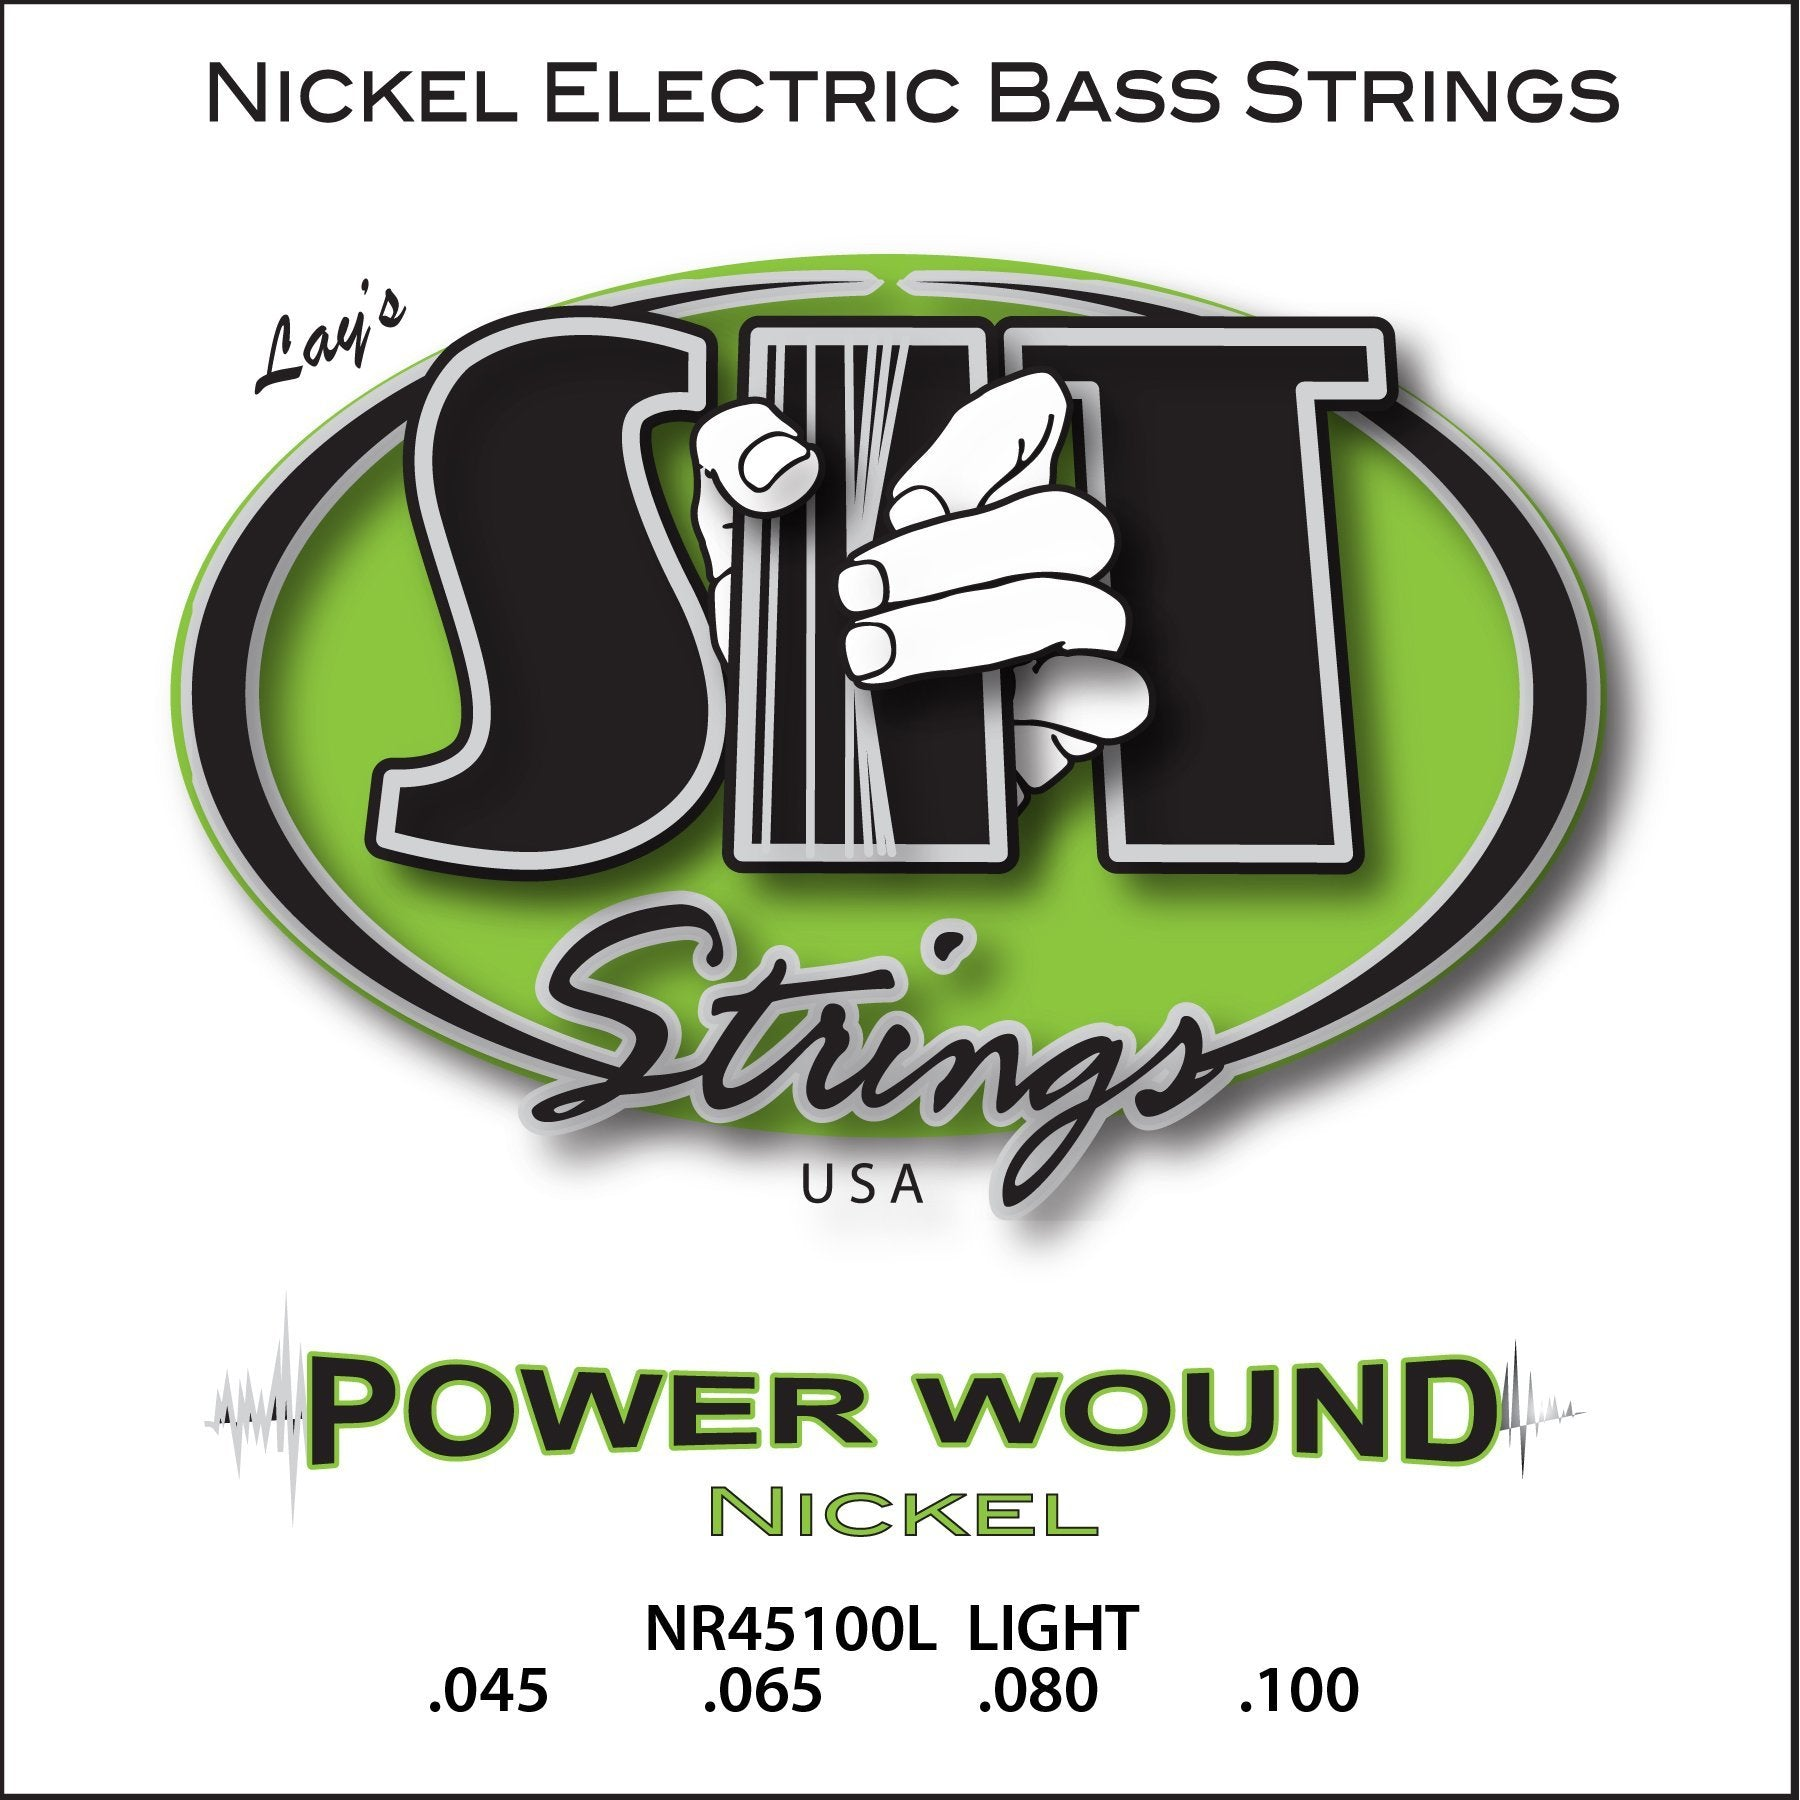 NR45100L LIGHT POWER WOUND NICKEL BASS      SIT STRING